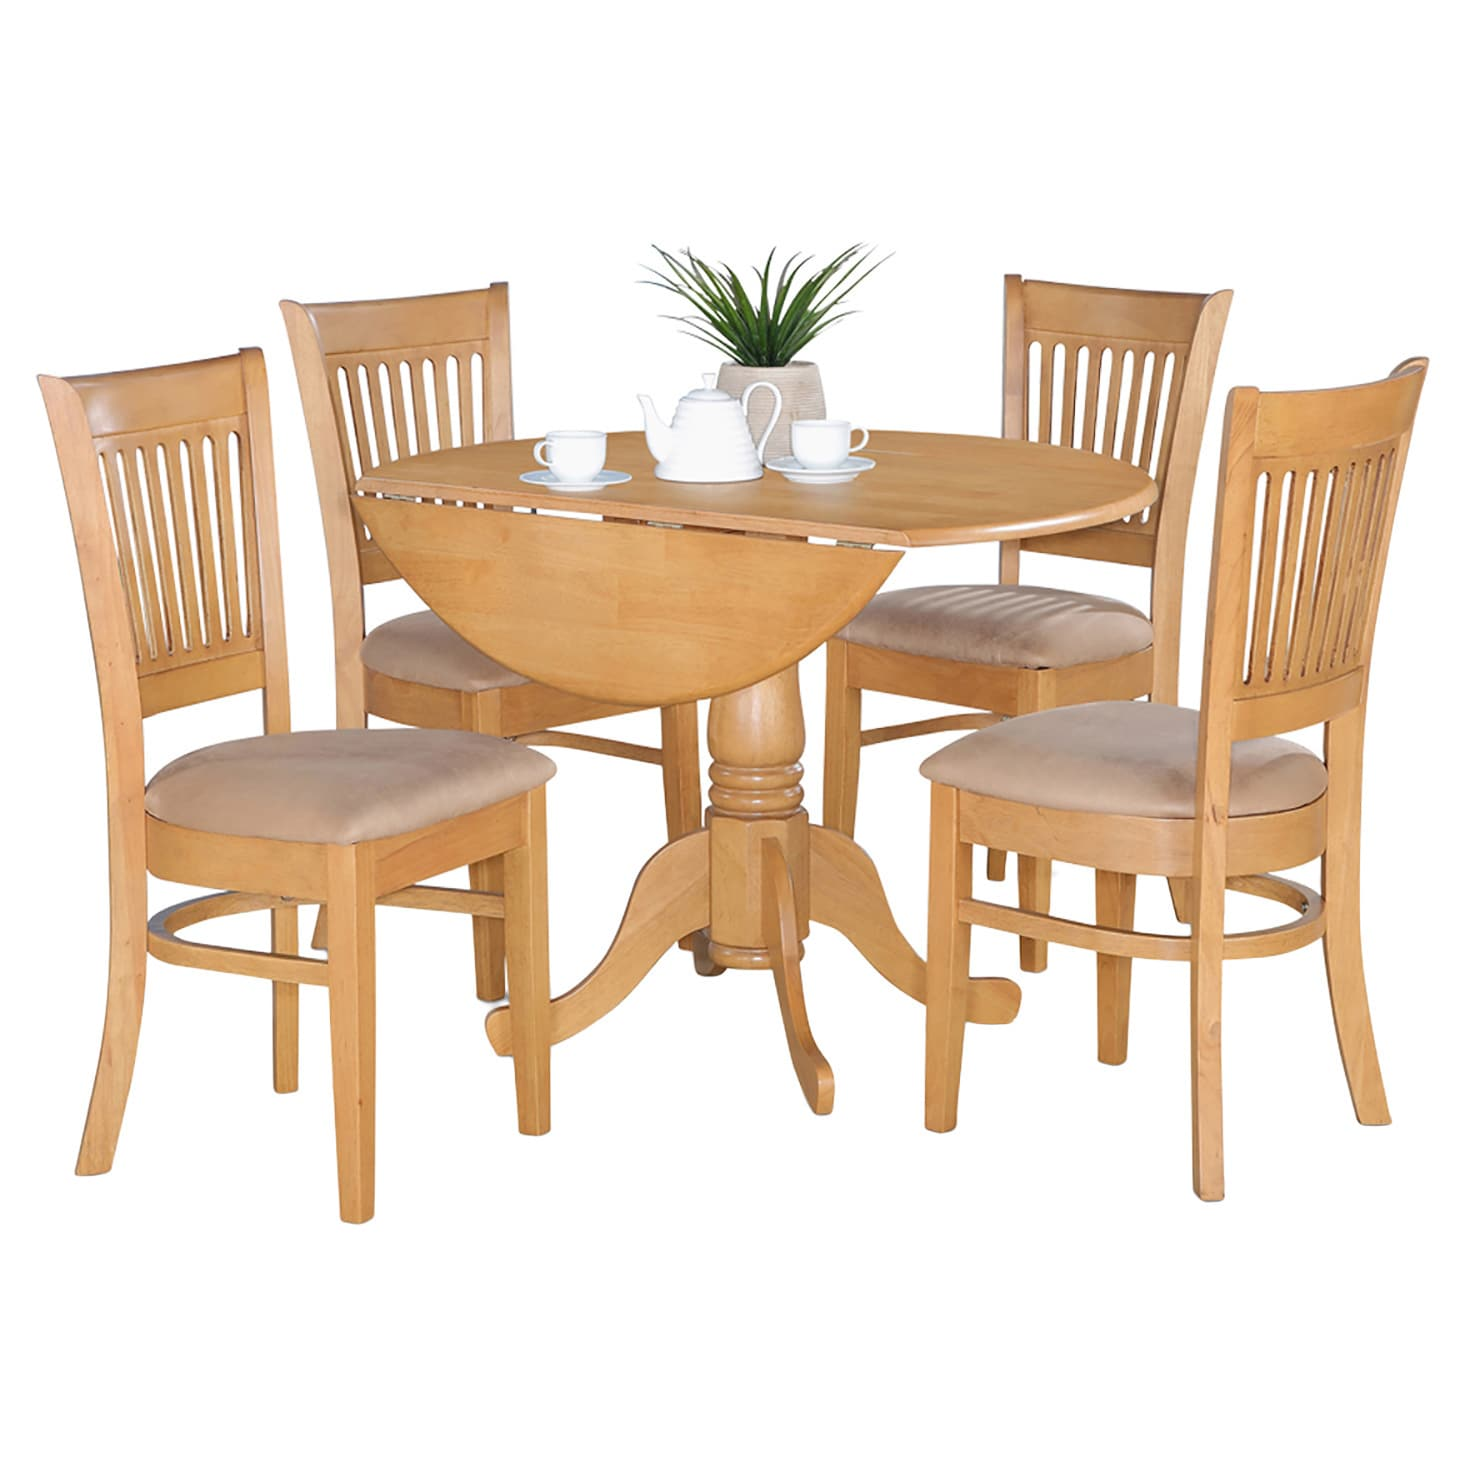 overstock com dining room chairs quilted chair cushions 1cheap oak drop leaf table and 4 dinette affordable